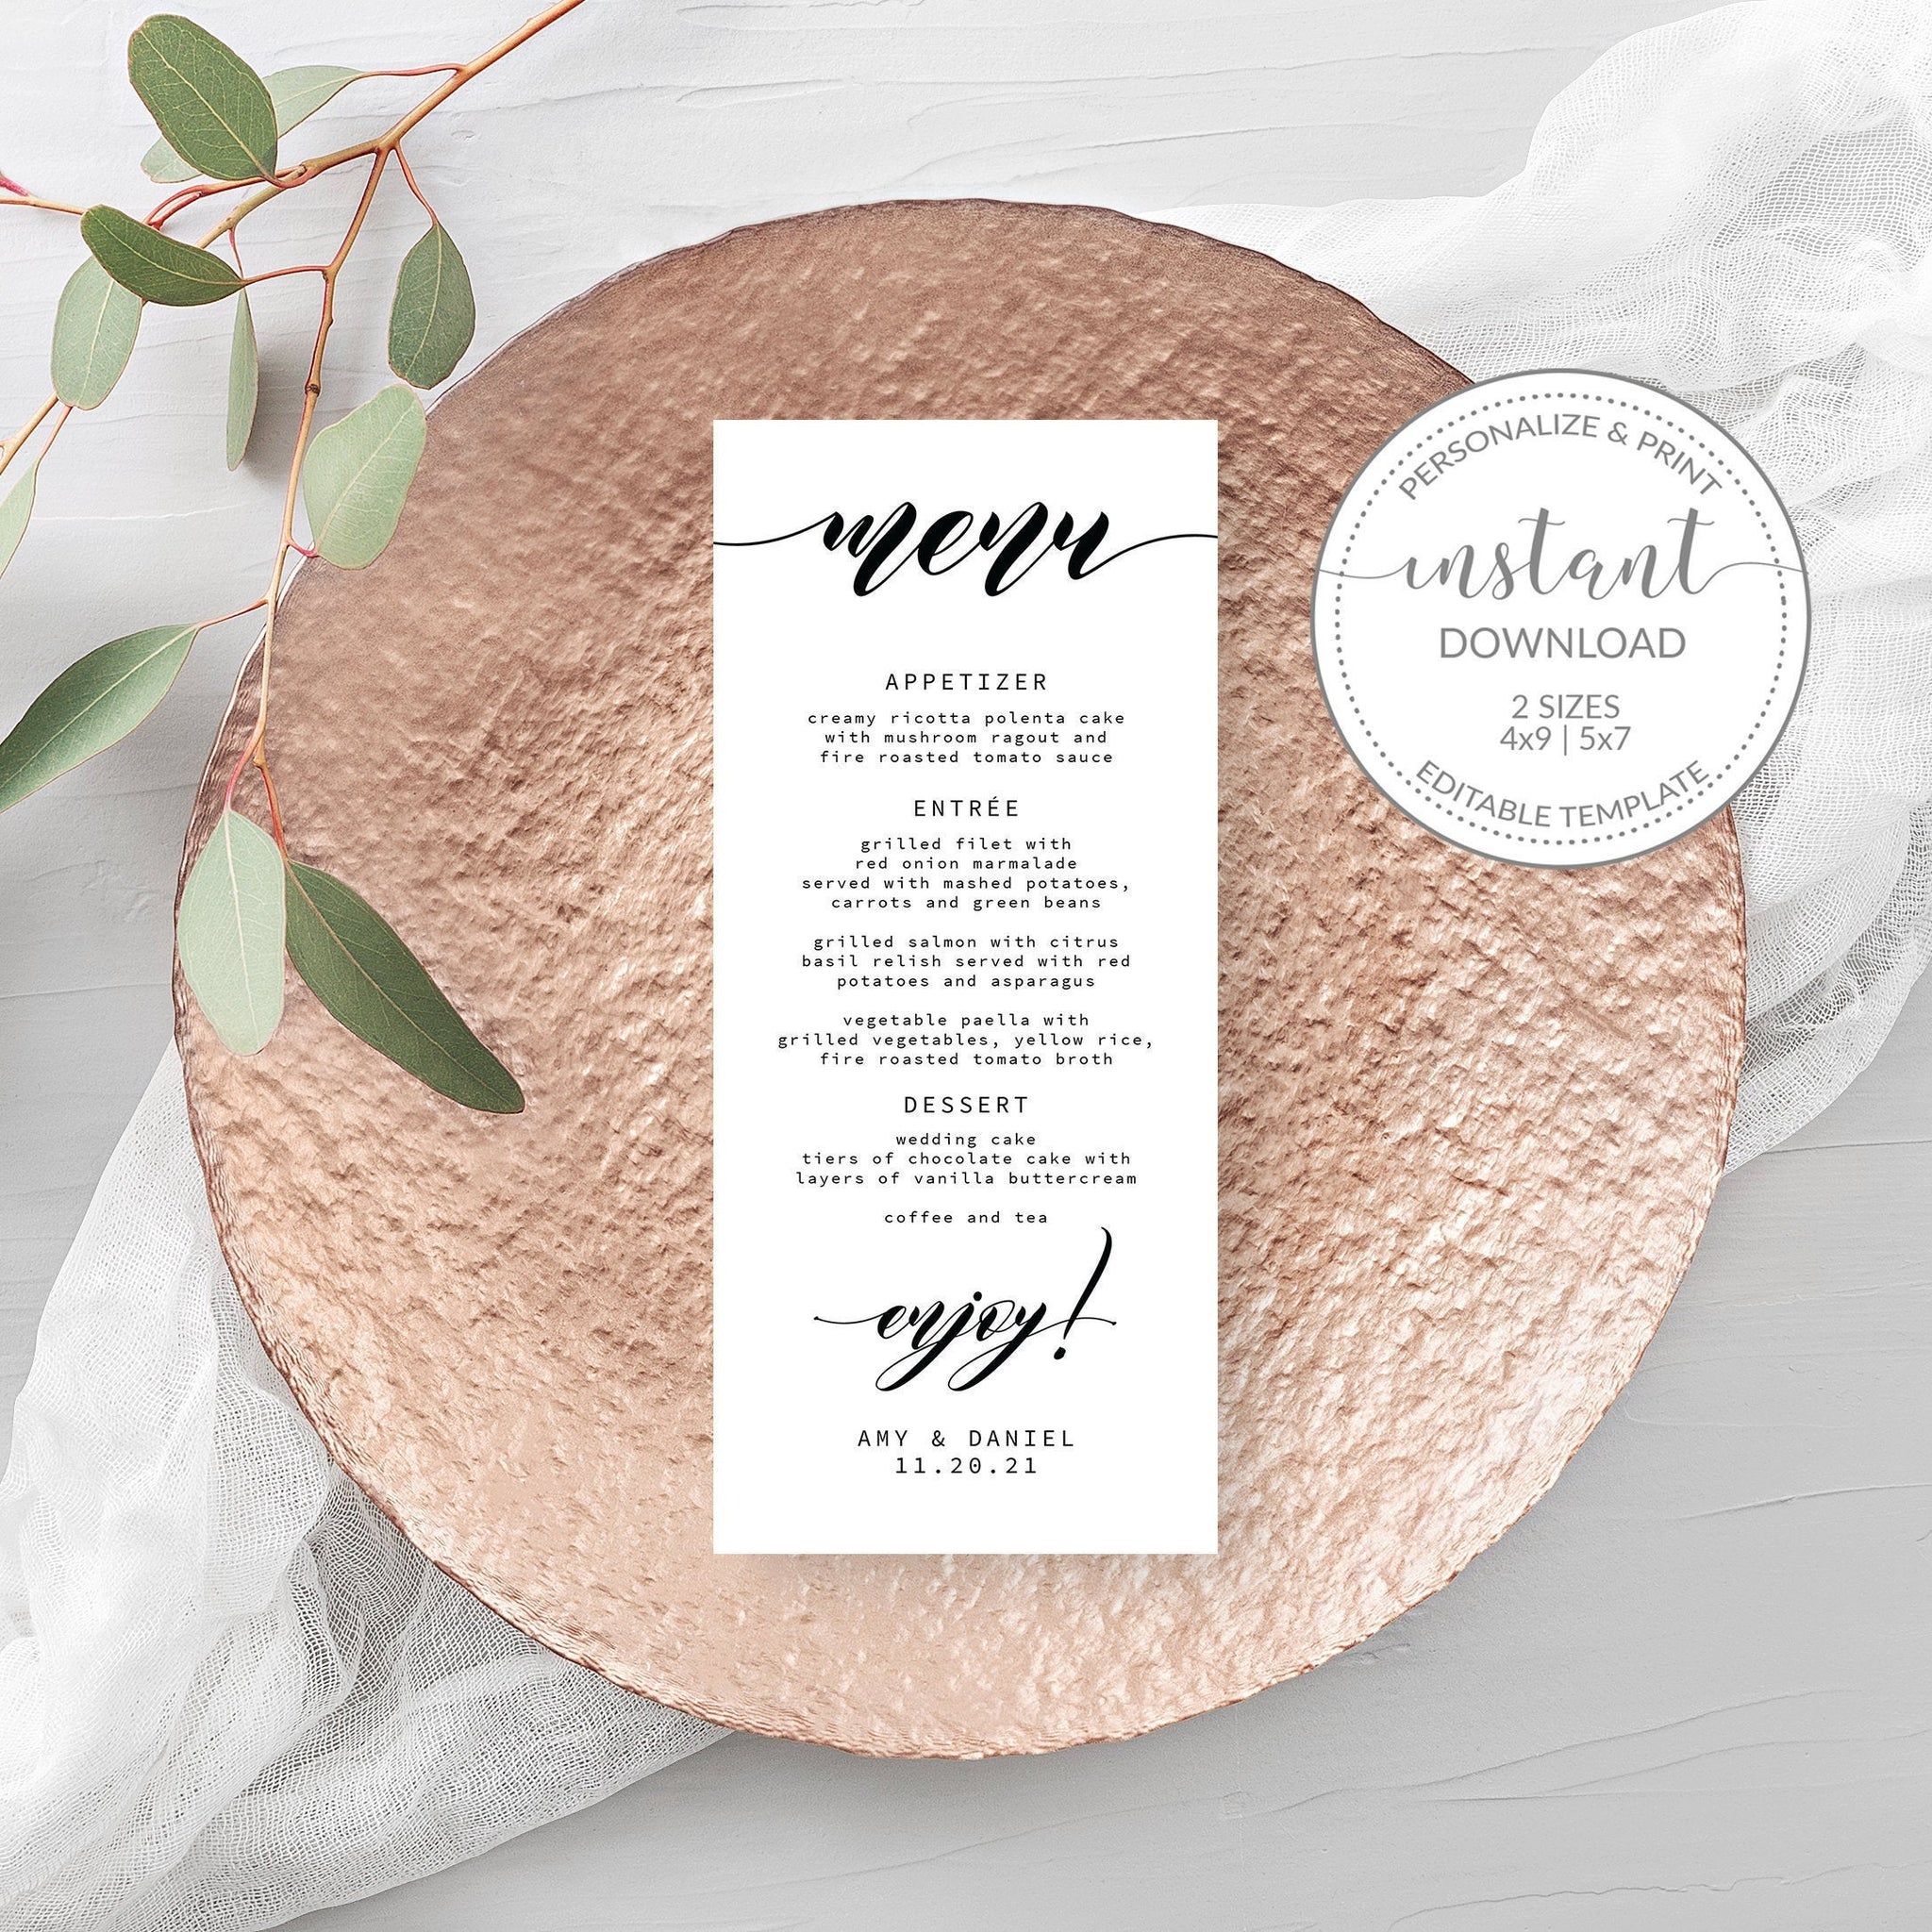 Wedding Menu Template Download, Black and White Menu Cards, Personalized Wedding Menu, 4x9 & 5x7 - SFB100 - @PlumPolkaDot